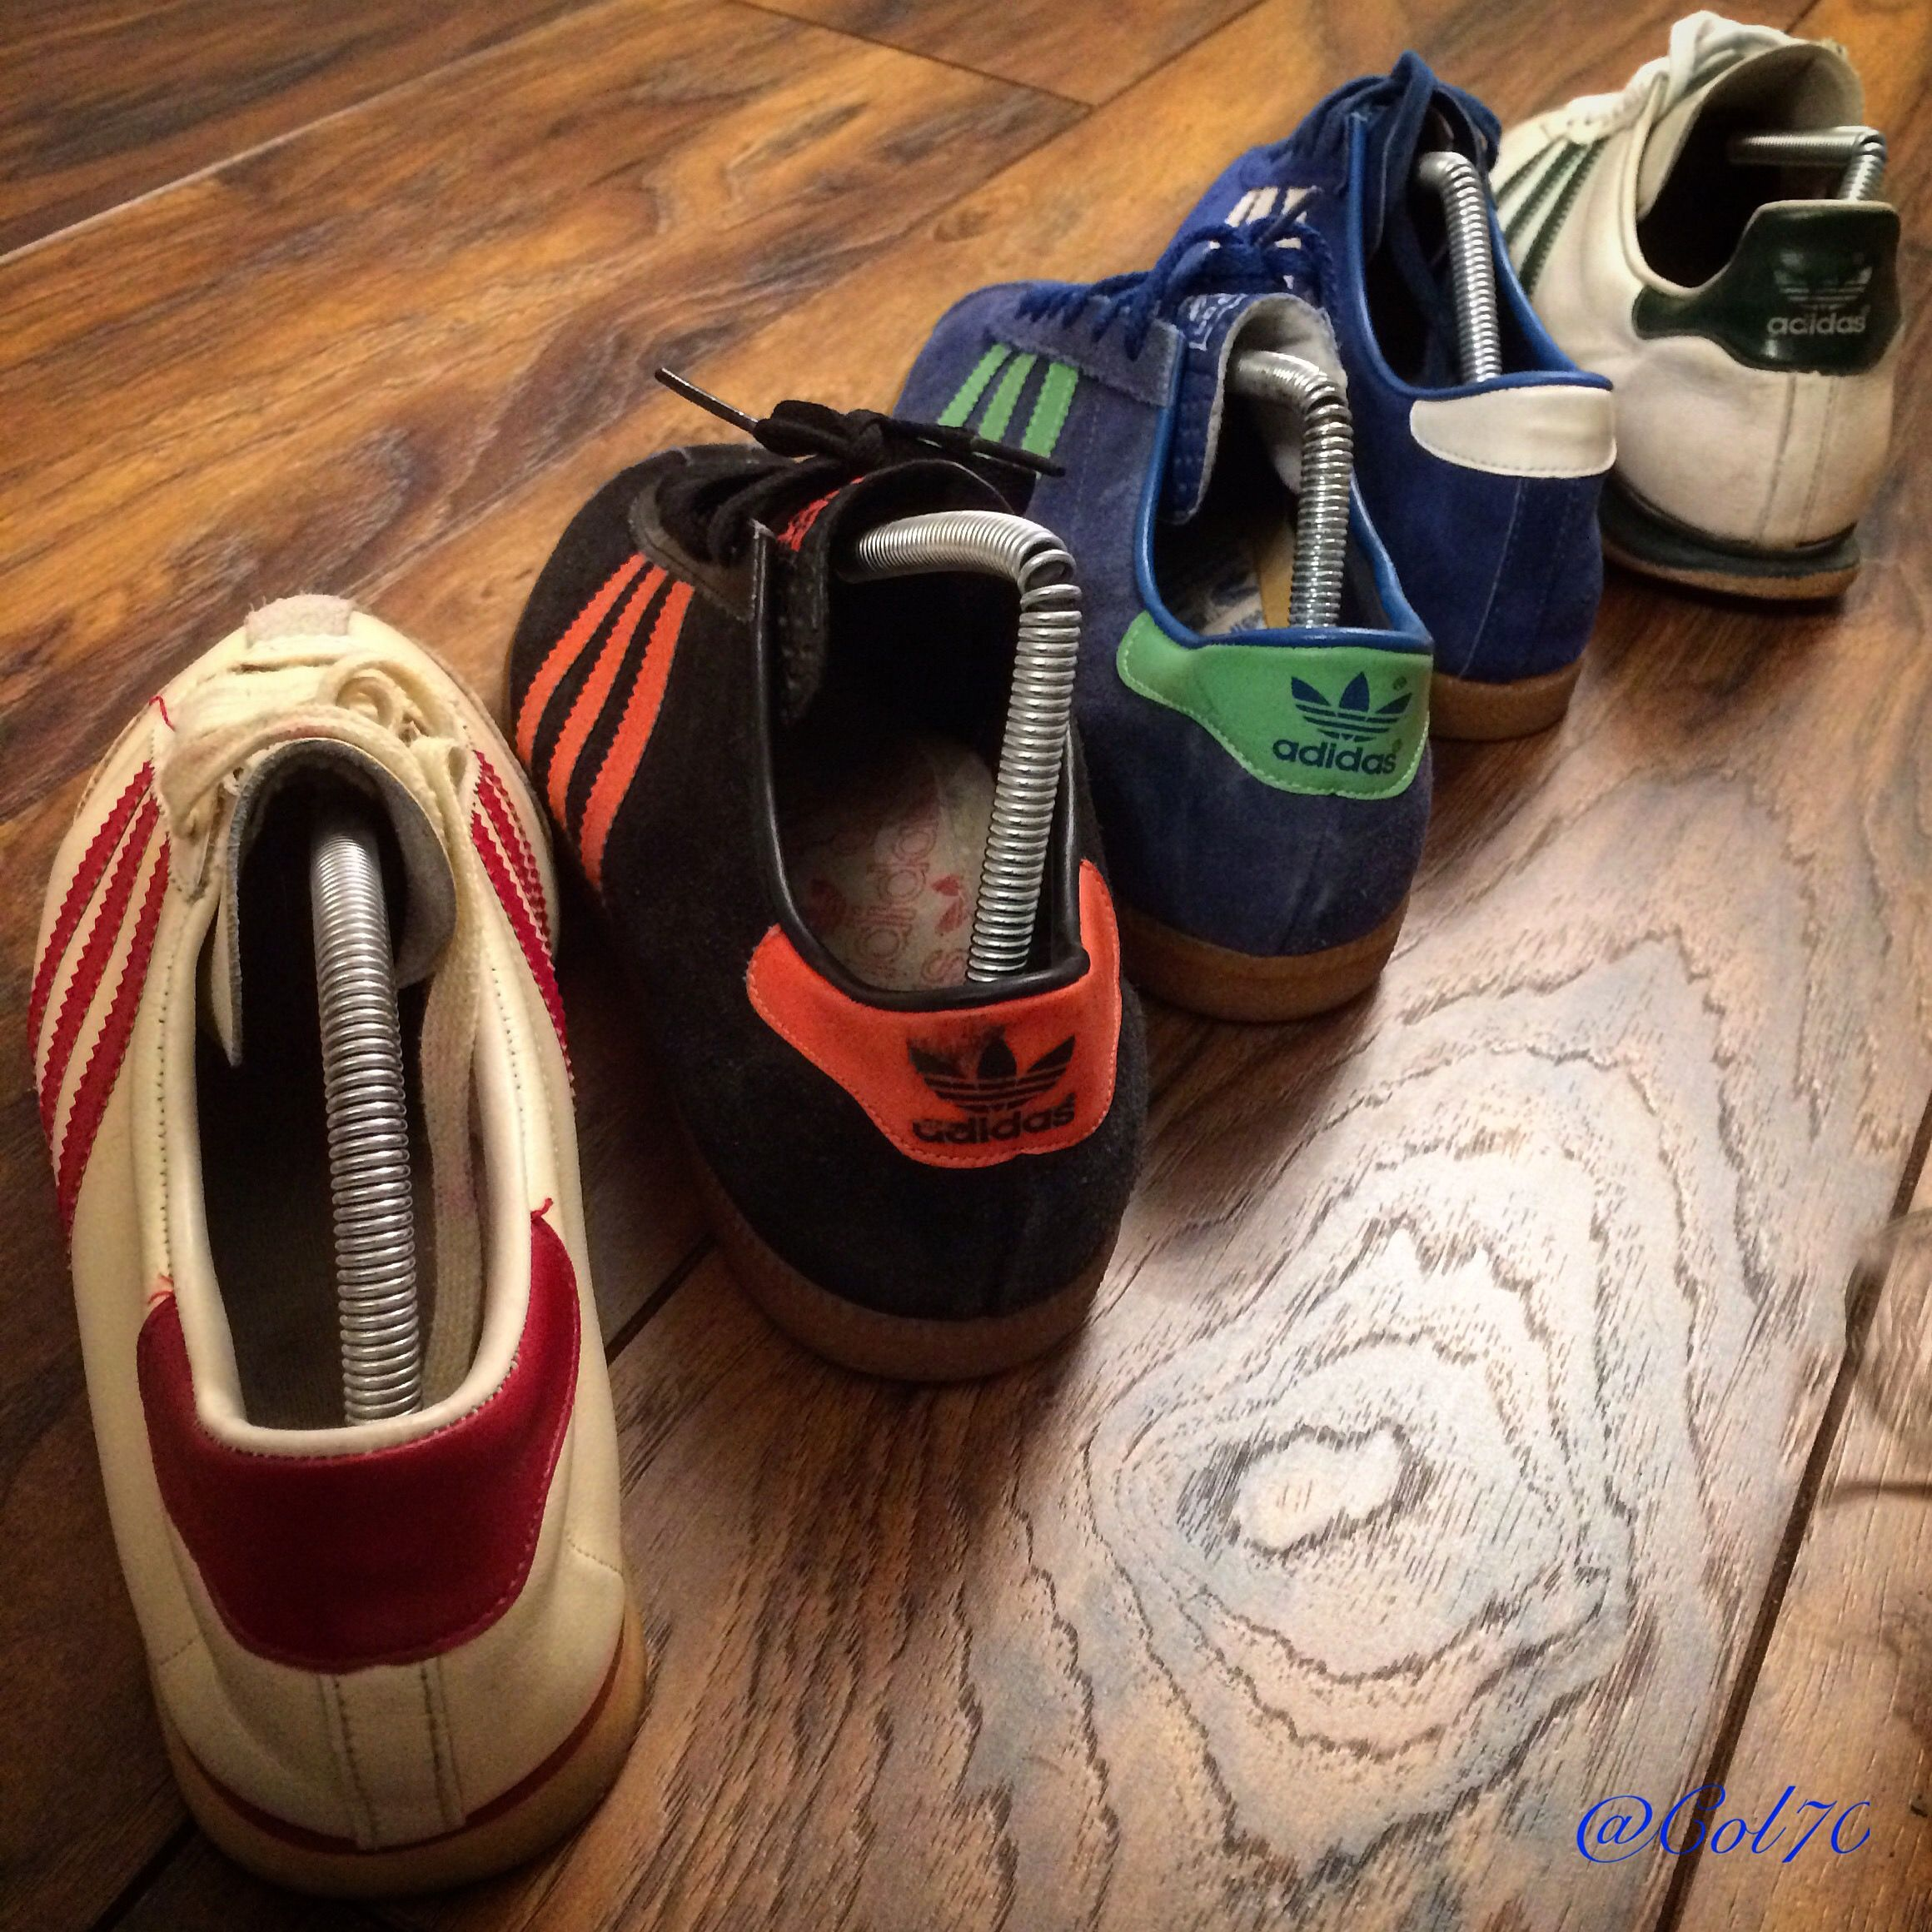 Adidas Spezial Originals Ride Cool Your Boots A3 Artwork